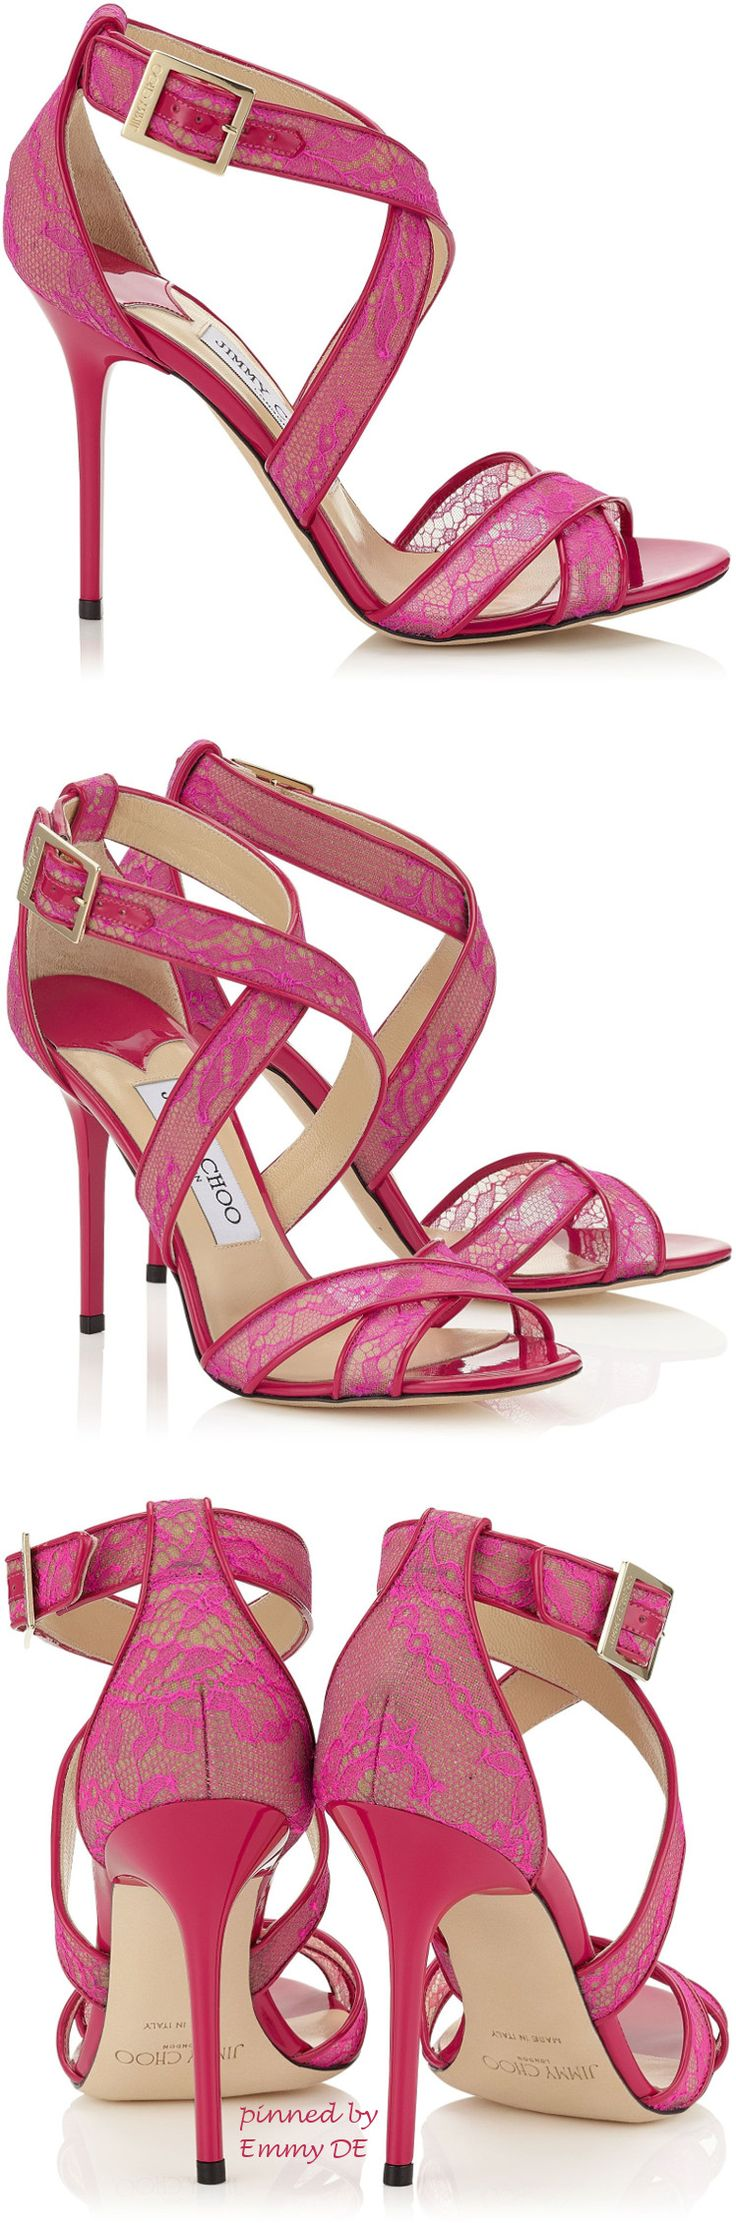 Emmy DE * Jimmy Choo 'Lottie' Raspberry Neon Lace Sandals #pink